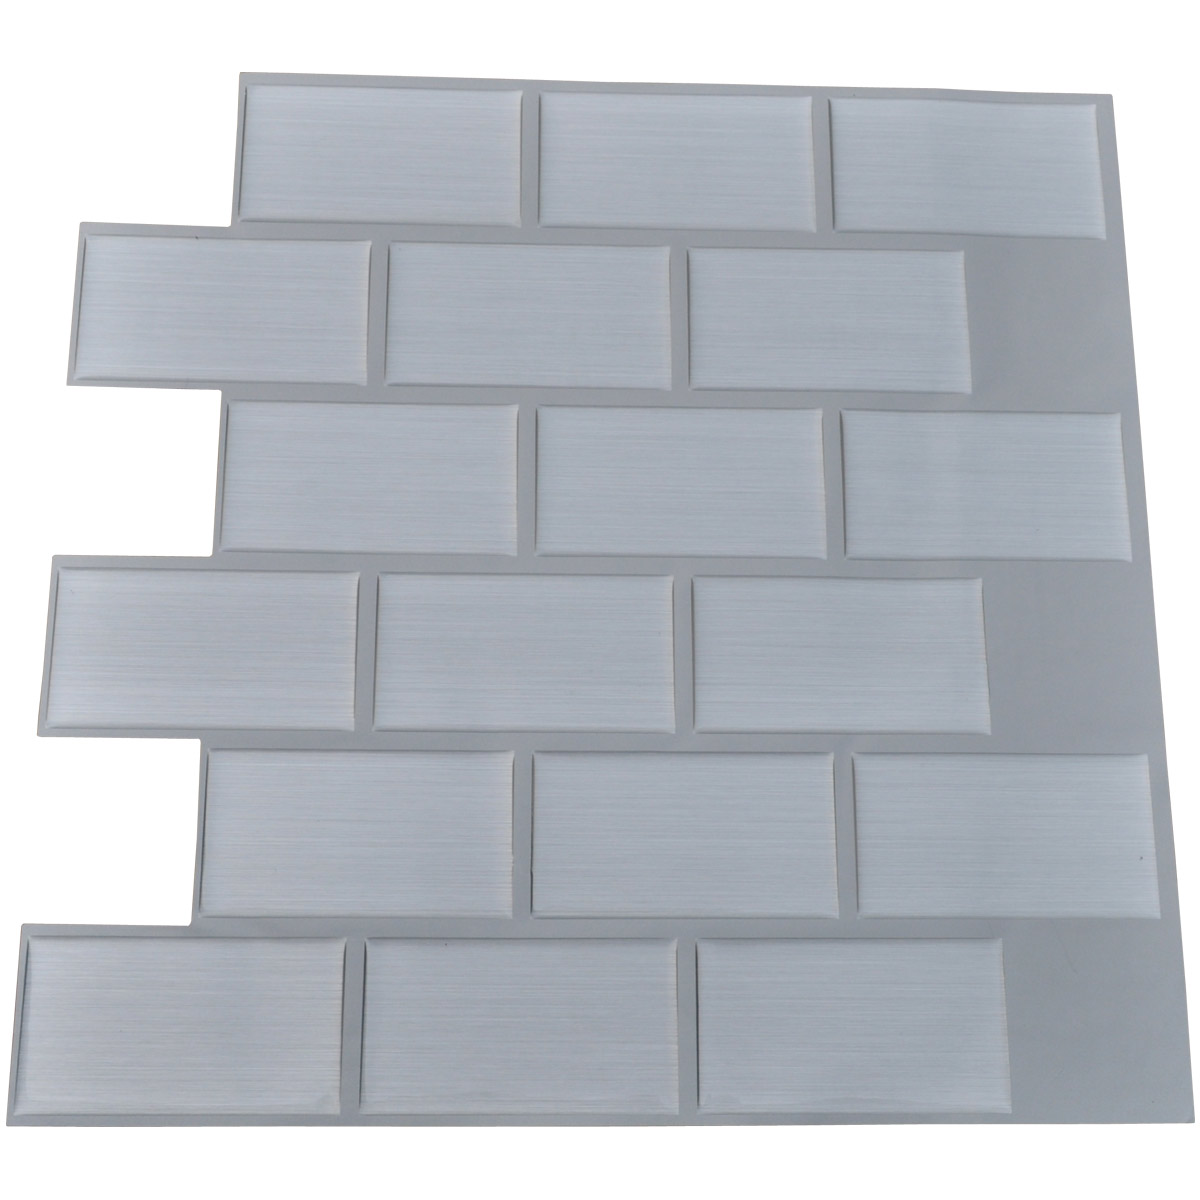 "12""x12"" Peel and Stick Tile for Kitchen Backsplash, Subway A50 White (6 Sheets)"